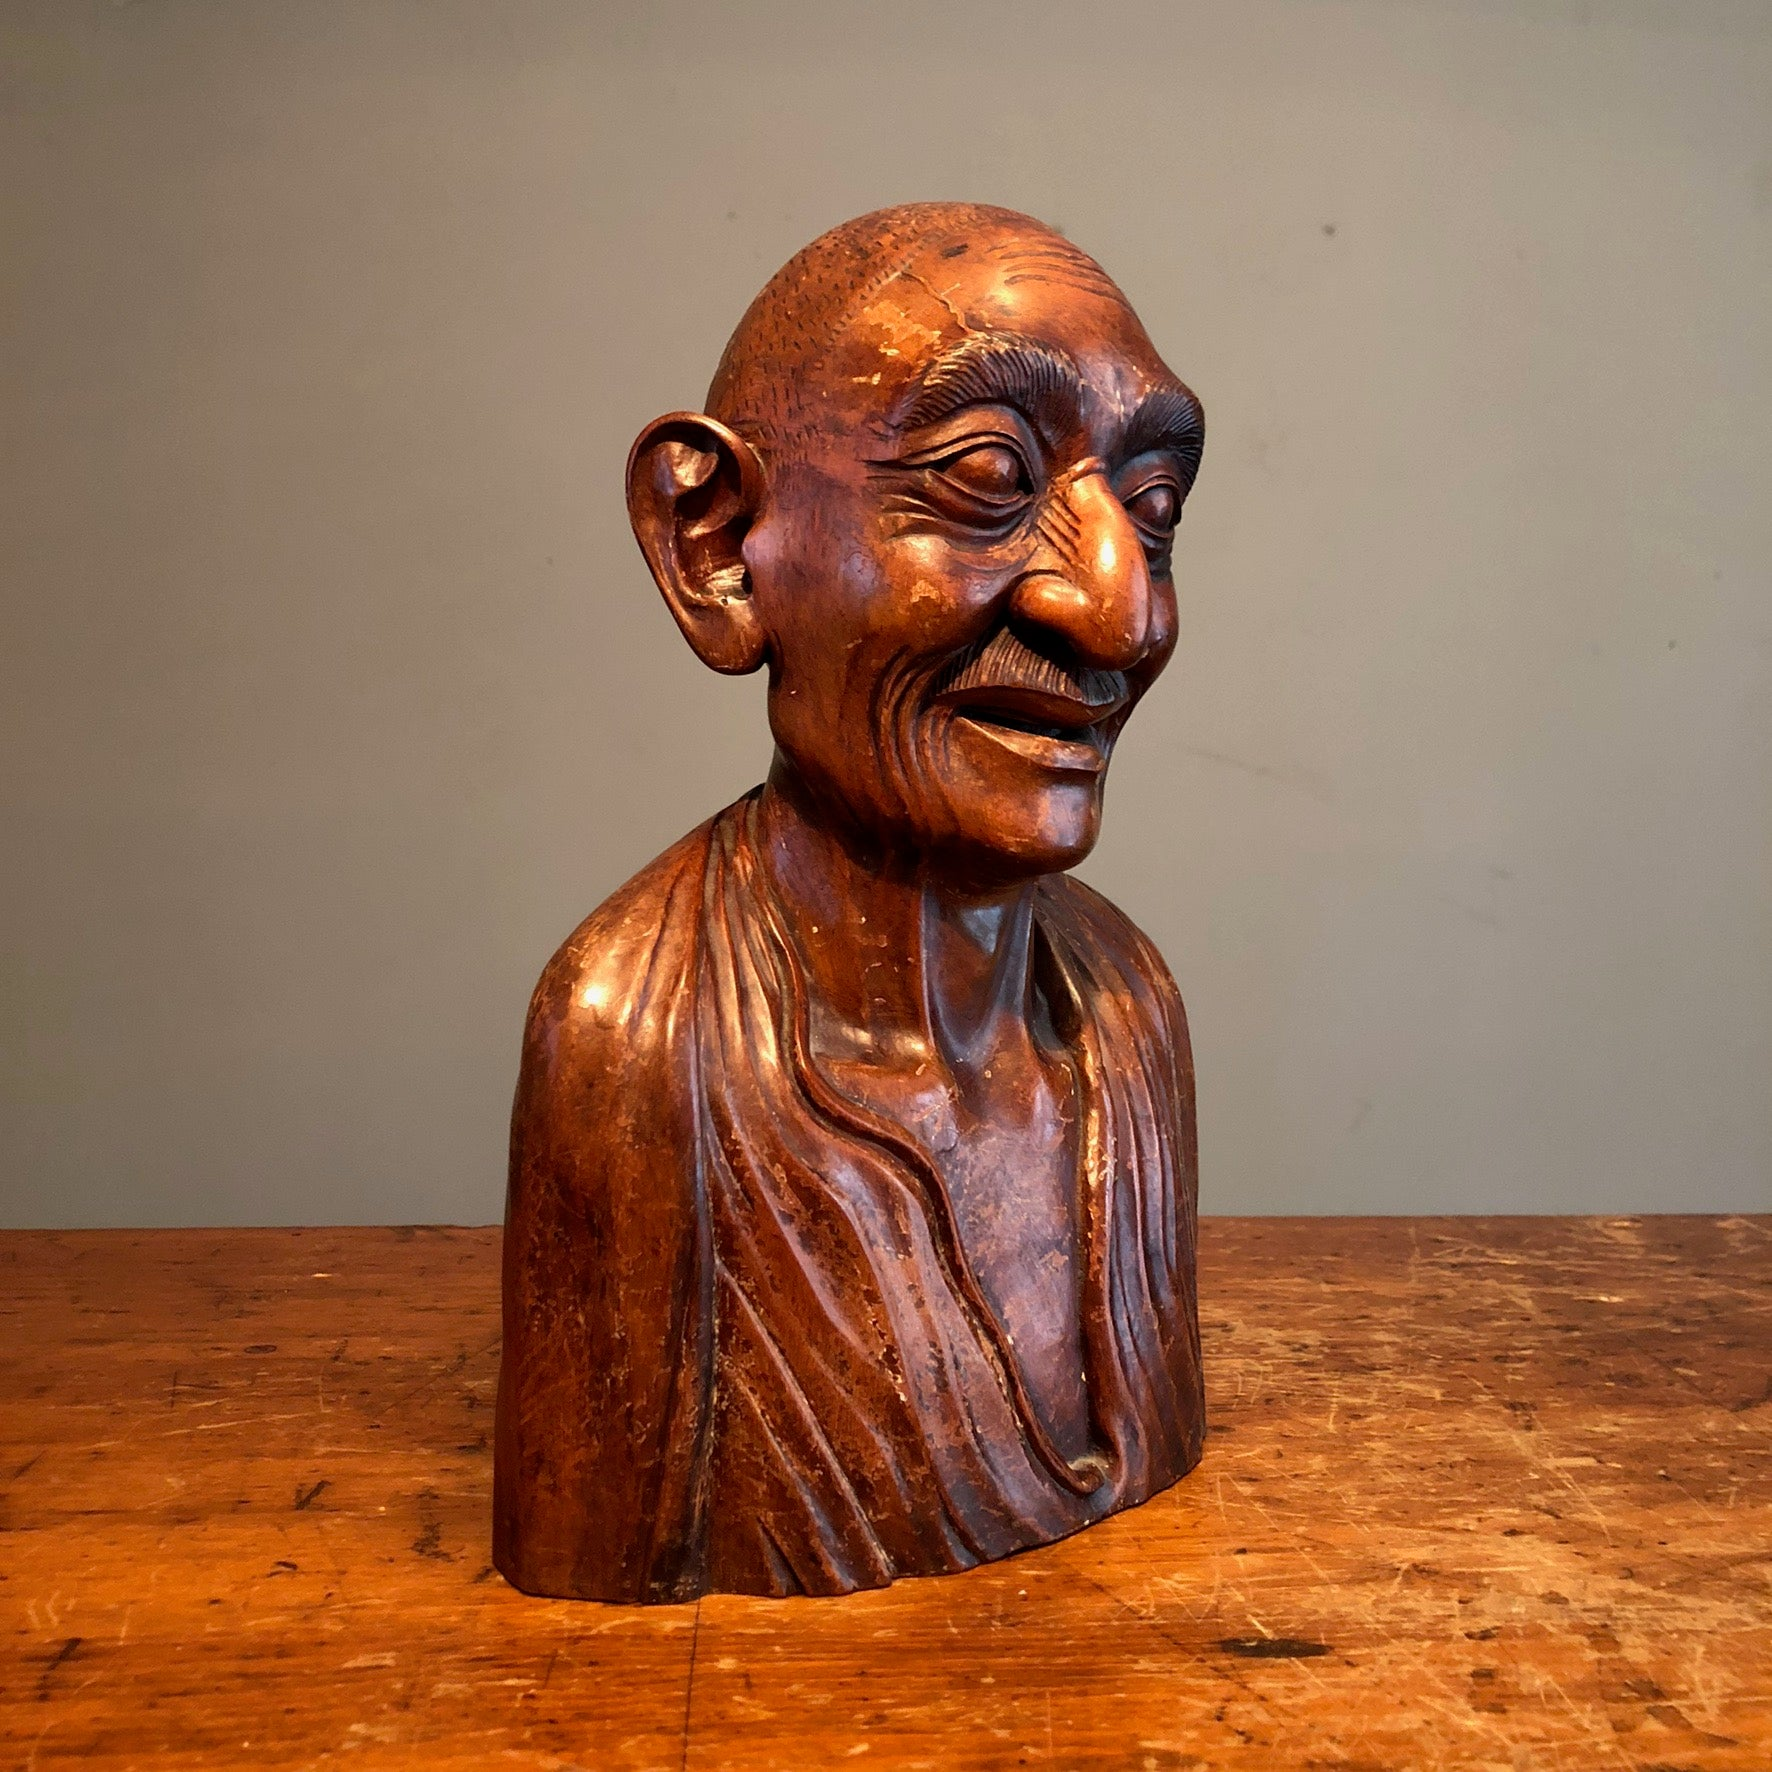 Chinese Wood Bust of Old Man - Turn of the Century - Antique Ornate Sculpture - Rare Asian Carving - Mystery Artist - Creepy